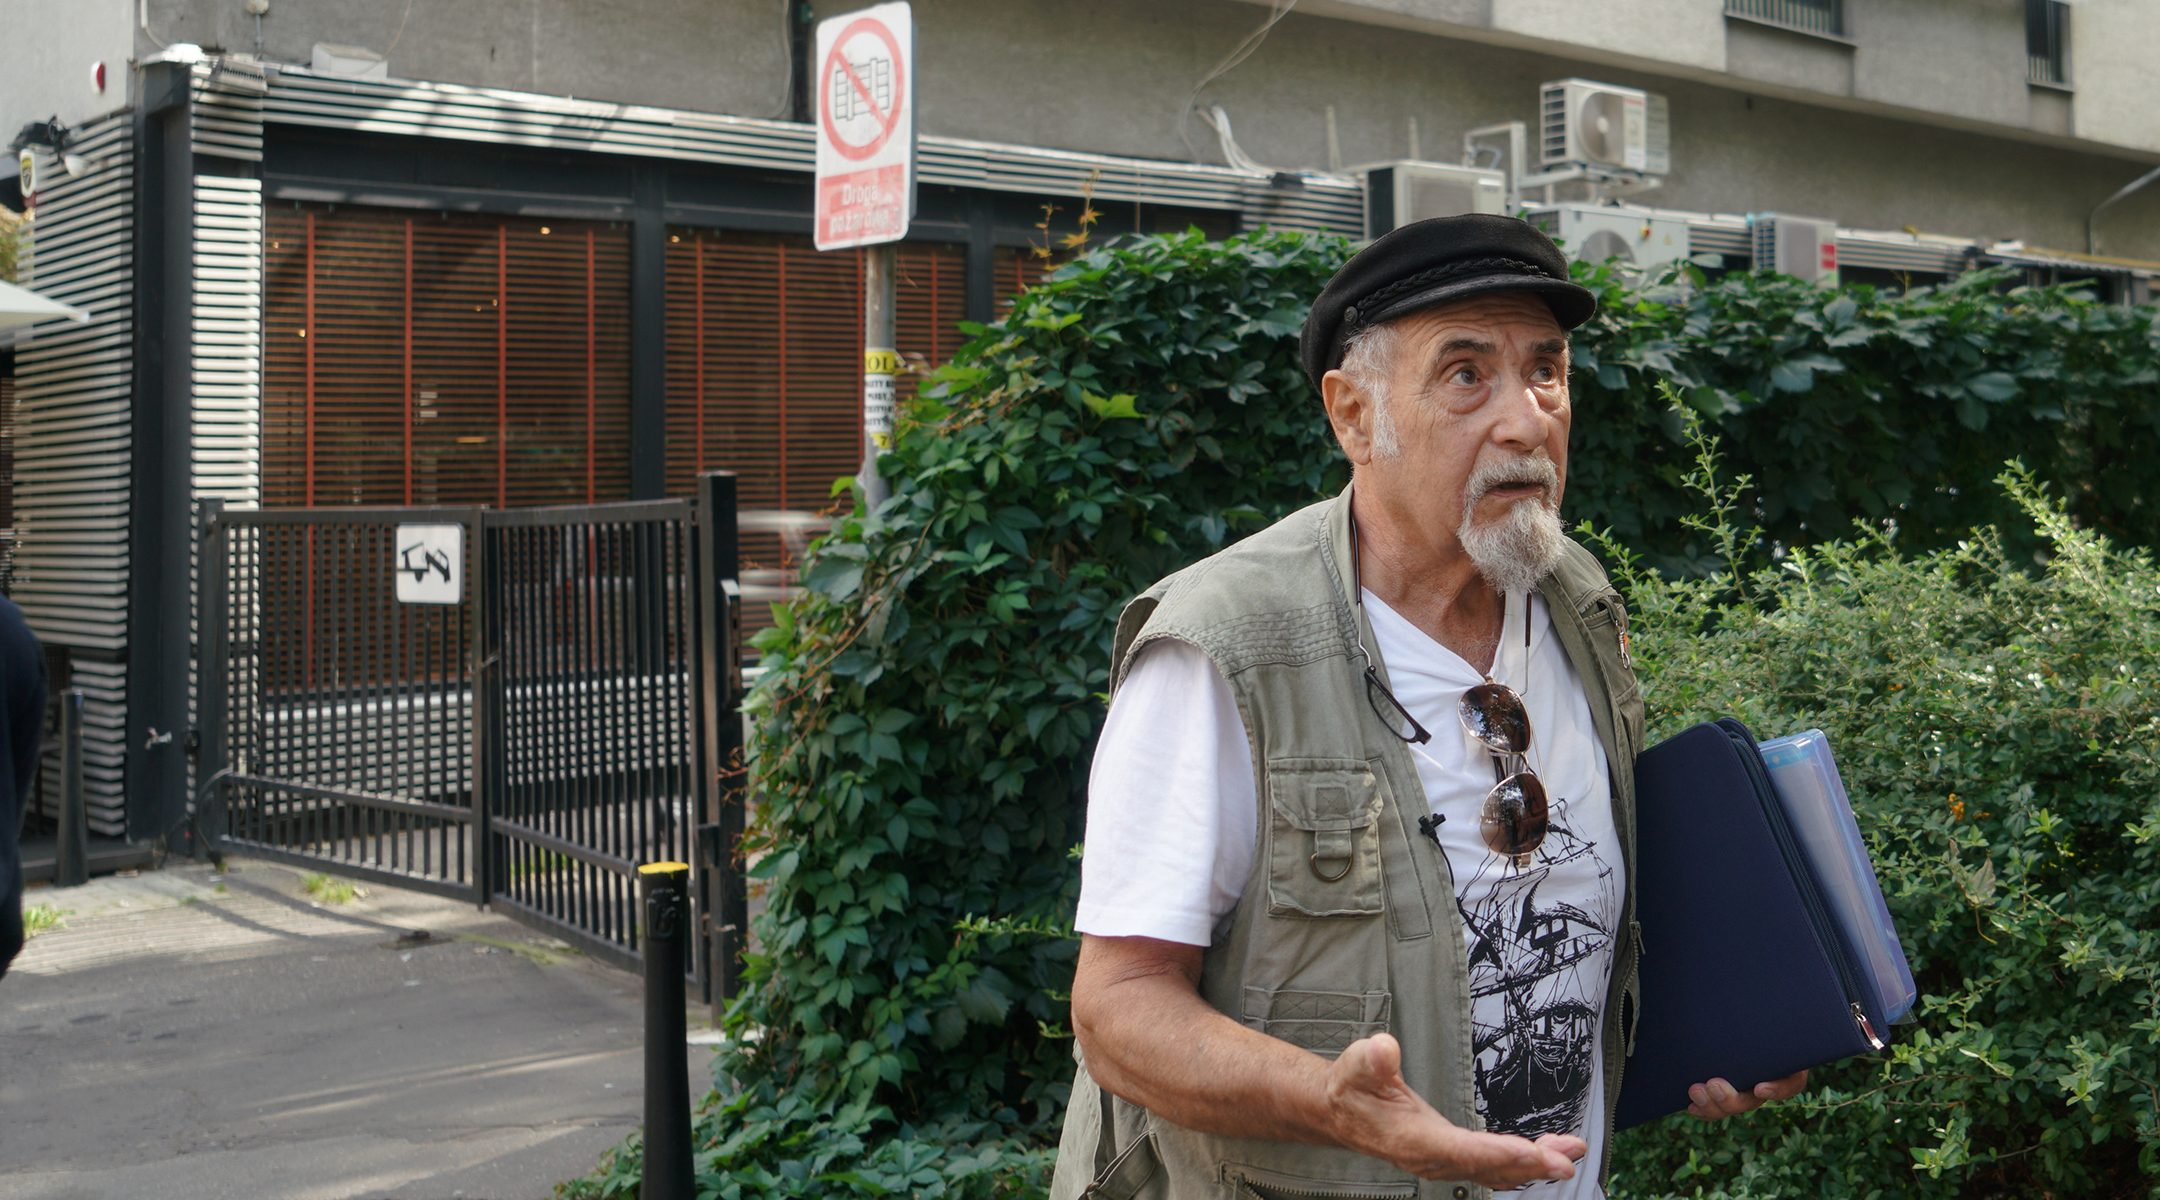 Yoram Sztykgold recalls his childhood in Warsaw, Poland, which he visited to obtain restitution for property on Sept. 5, 2018. (Cnaan Liphshiz)